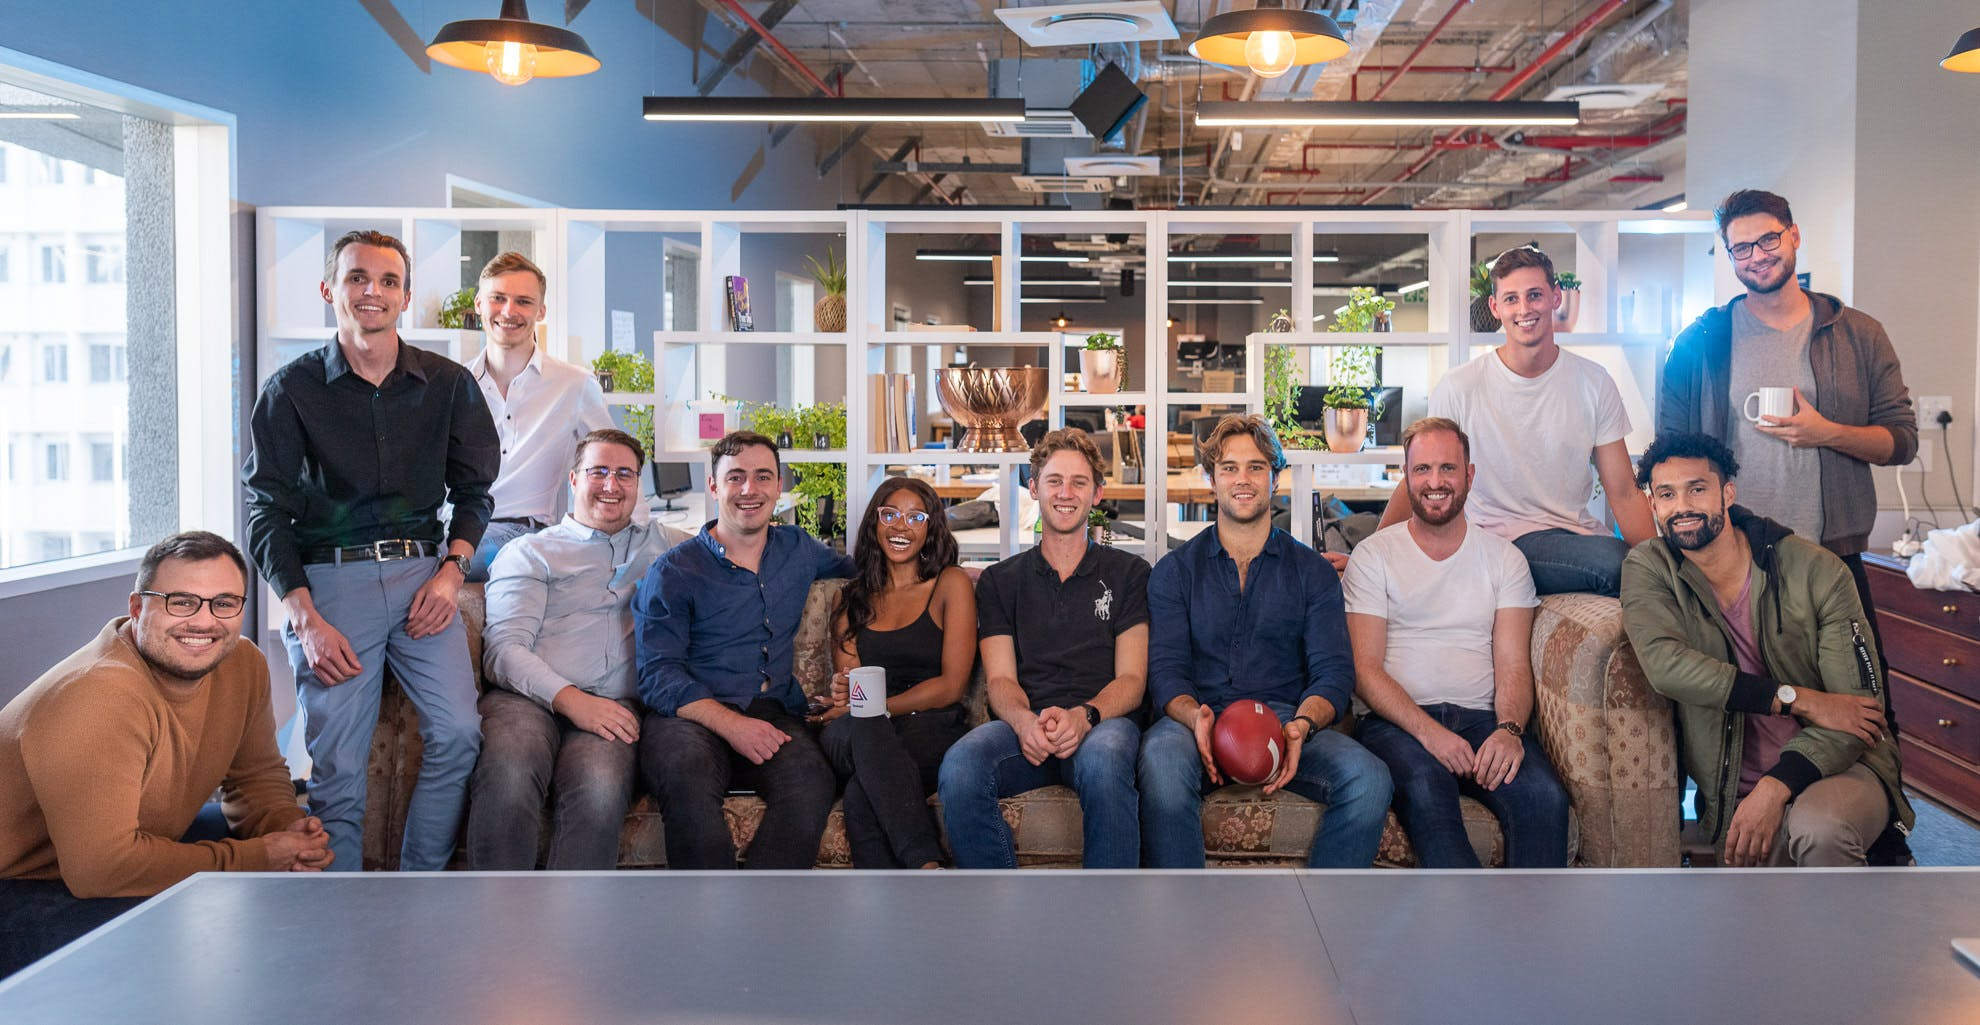 Pictured are some of the team behind the innovation. The Delta consists of expert researchers, designers, developers, product managers, marketers, and growth specialists. They are the fuel running through our venture building engine.